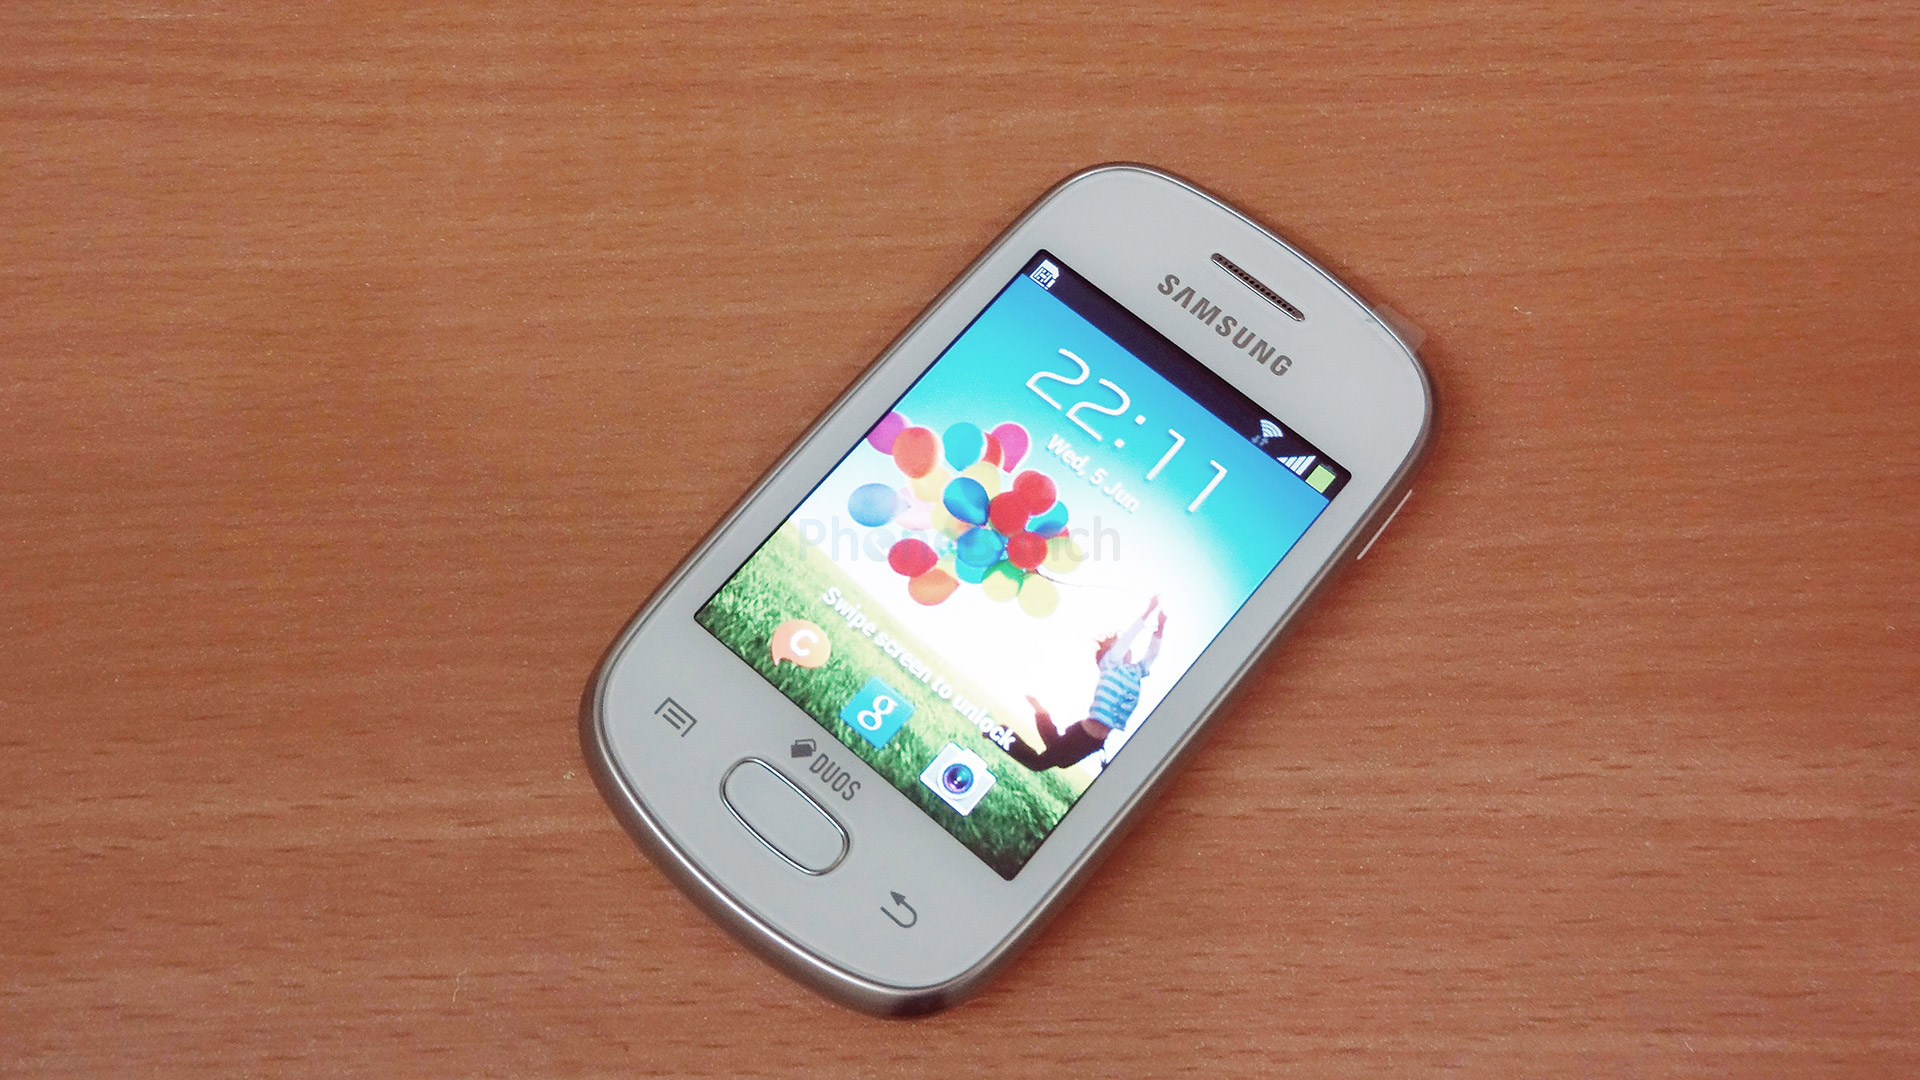 galaxy star s5282 review - photo #5